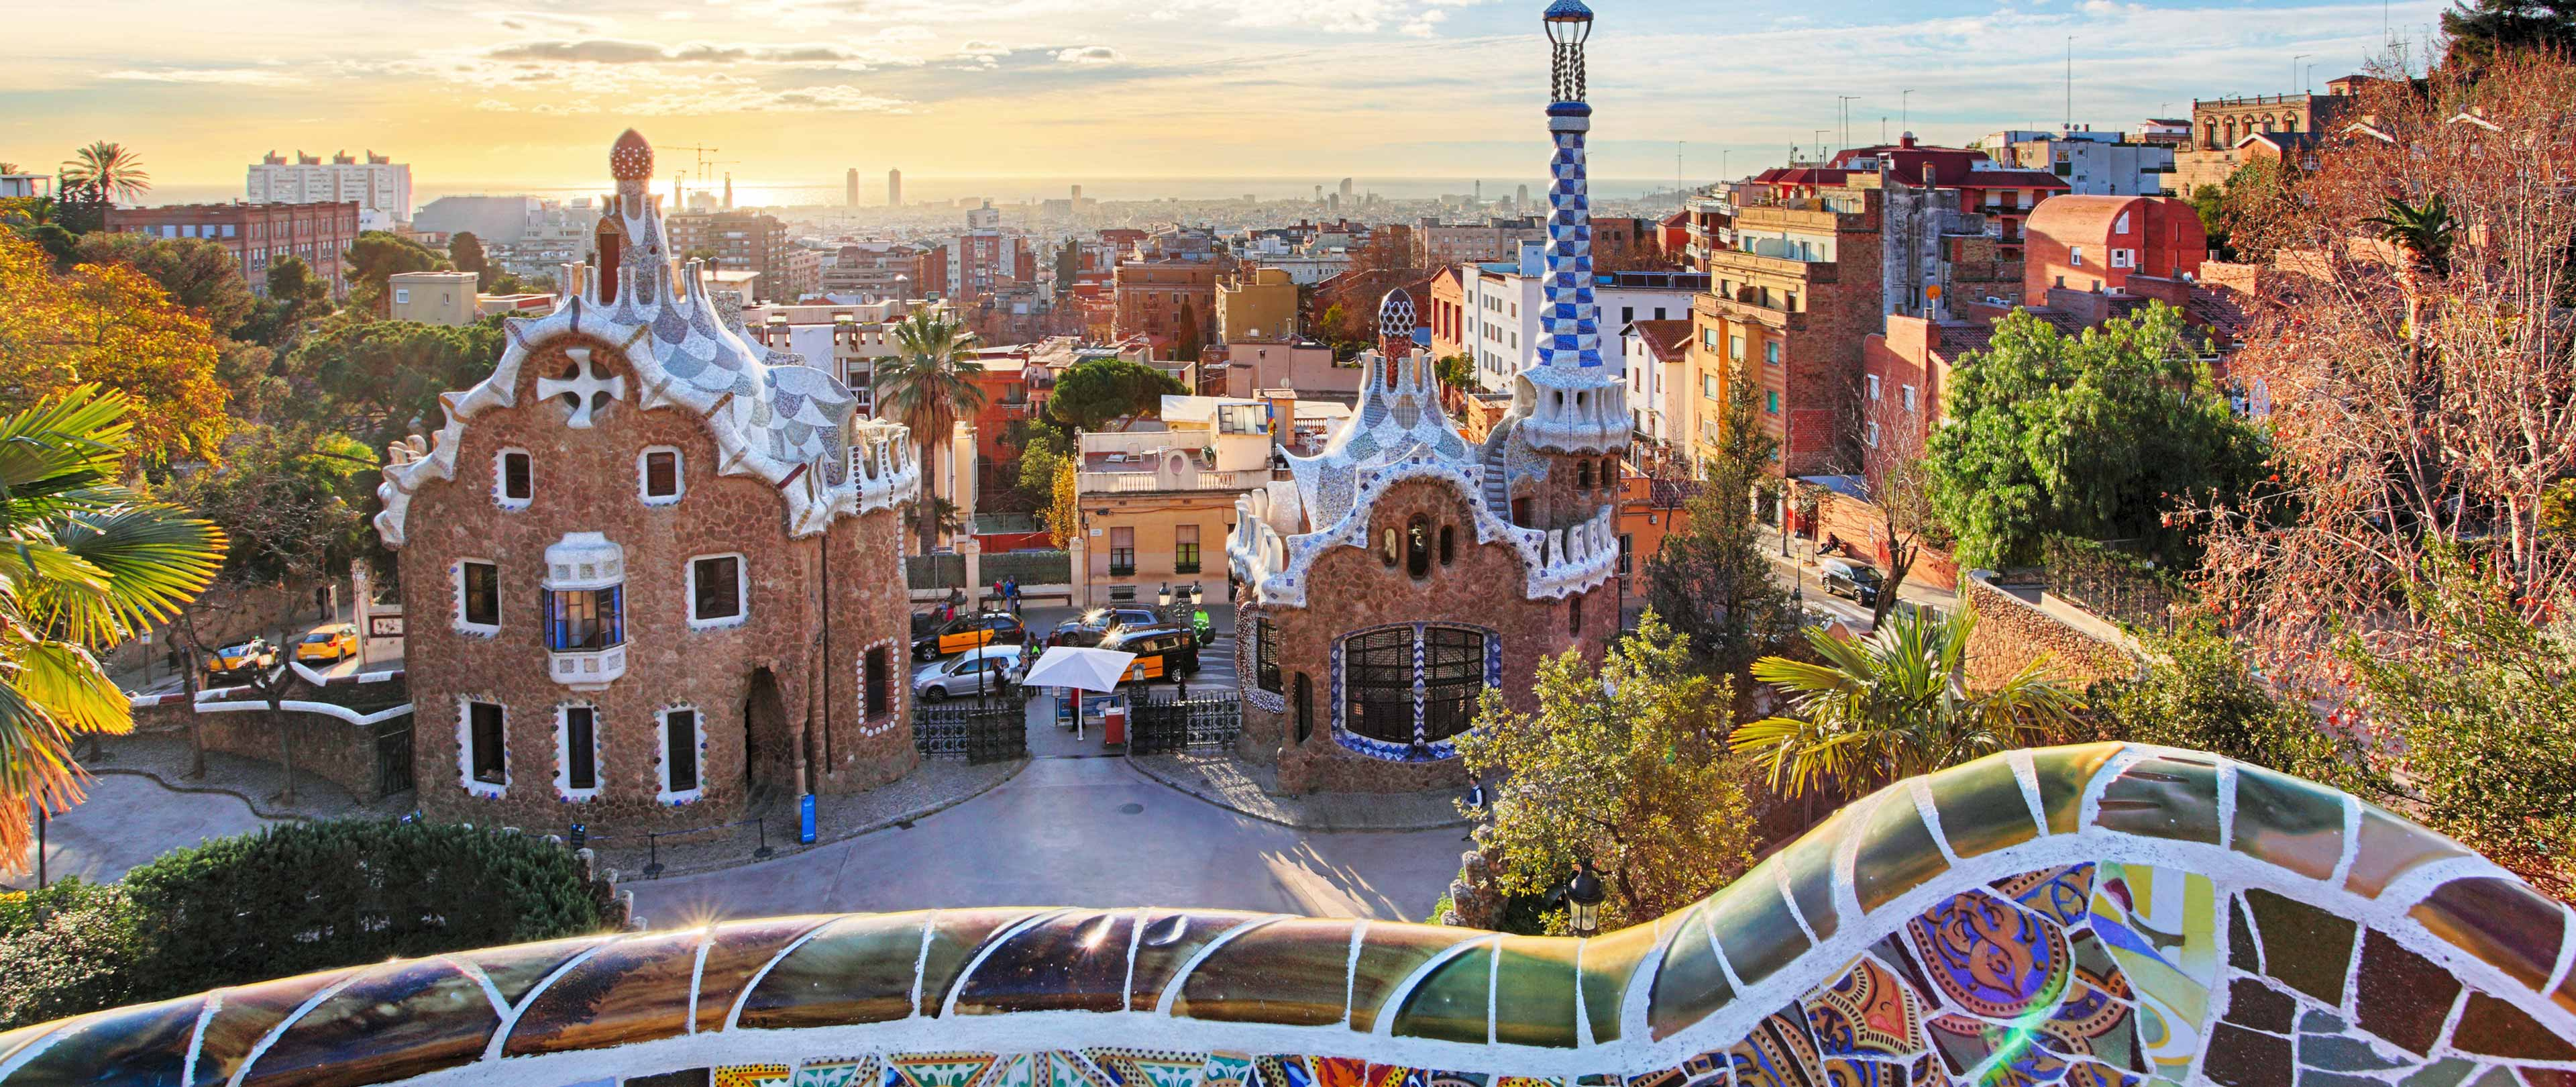 Budget-Friendly Must-Do Activities in Barcelona, Spain